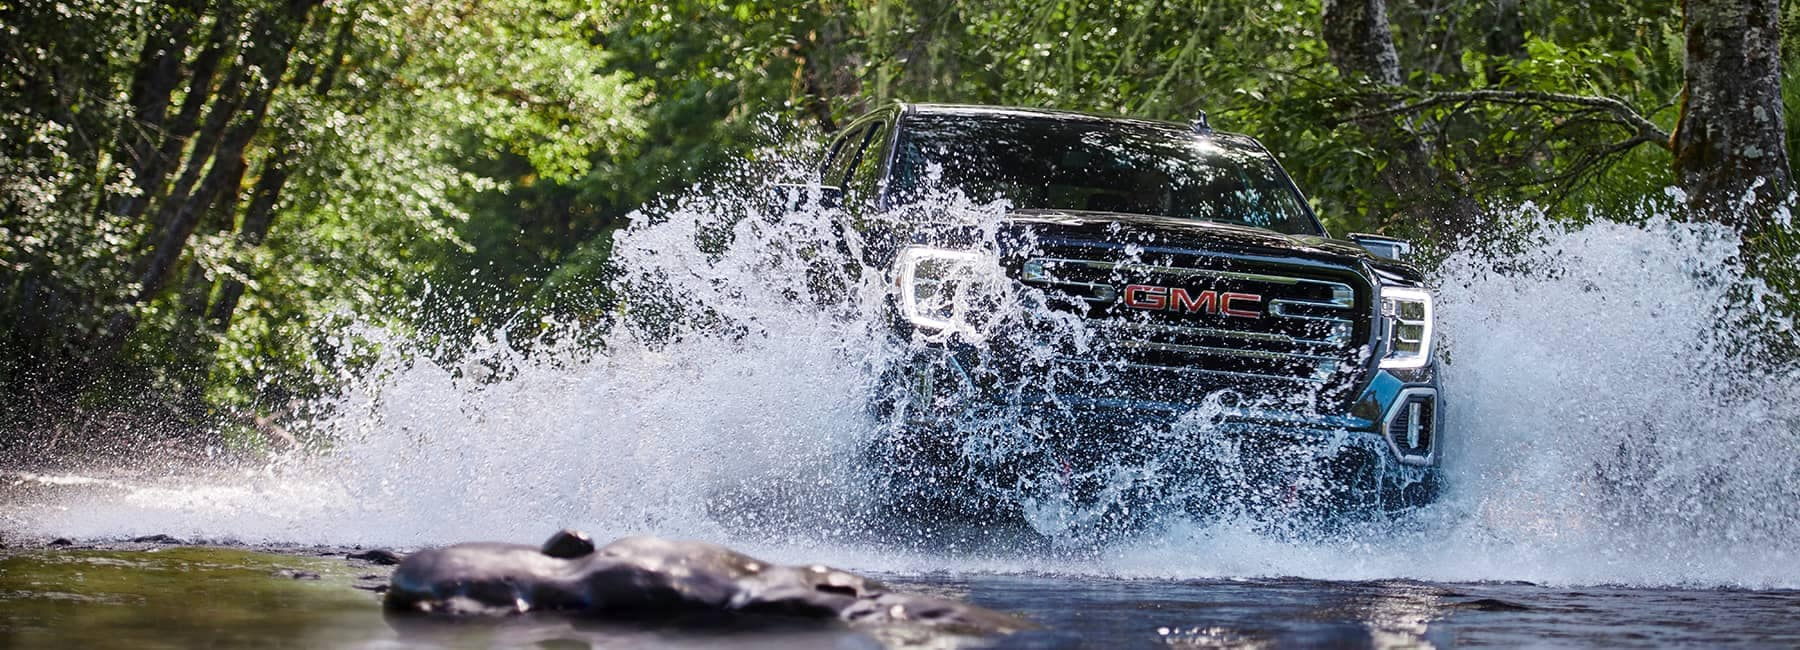 2020-GMC-Sierra-1500-Crossing-a-River